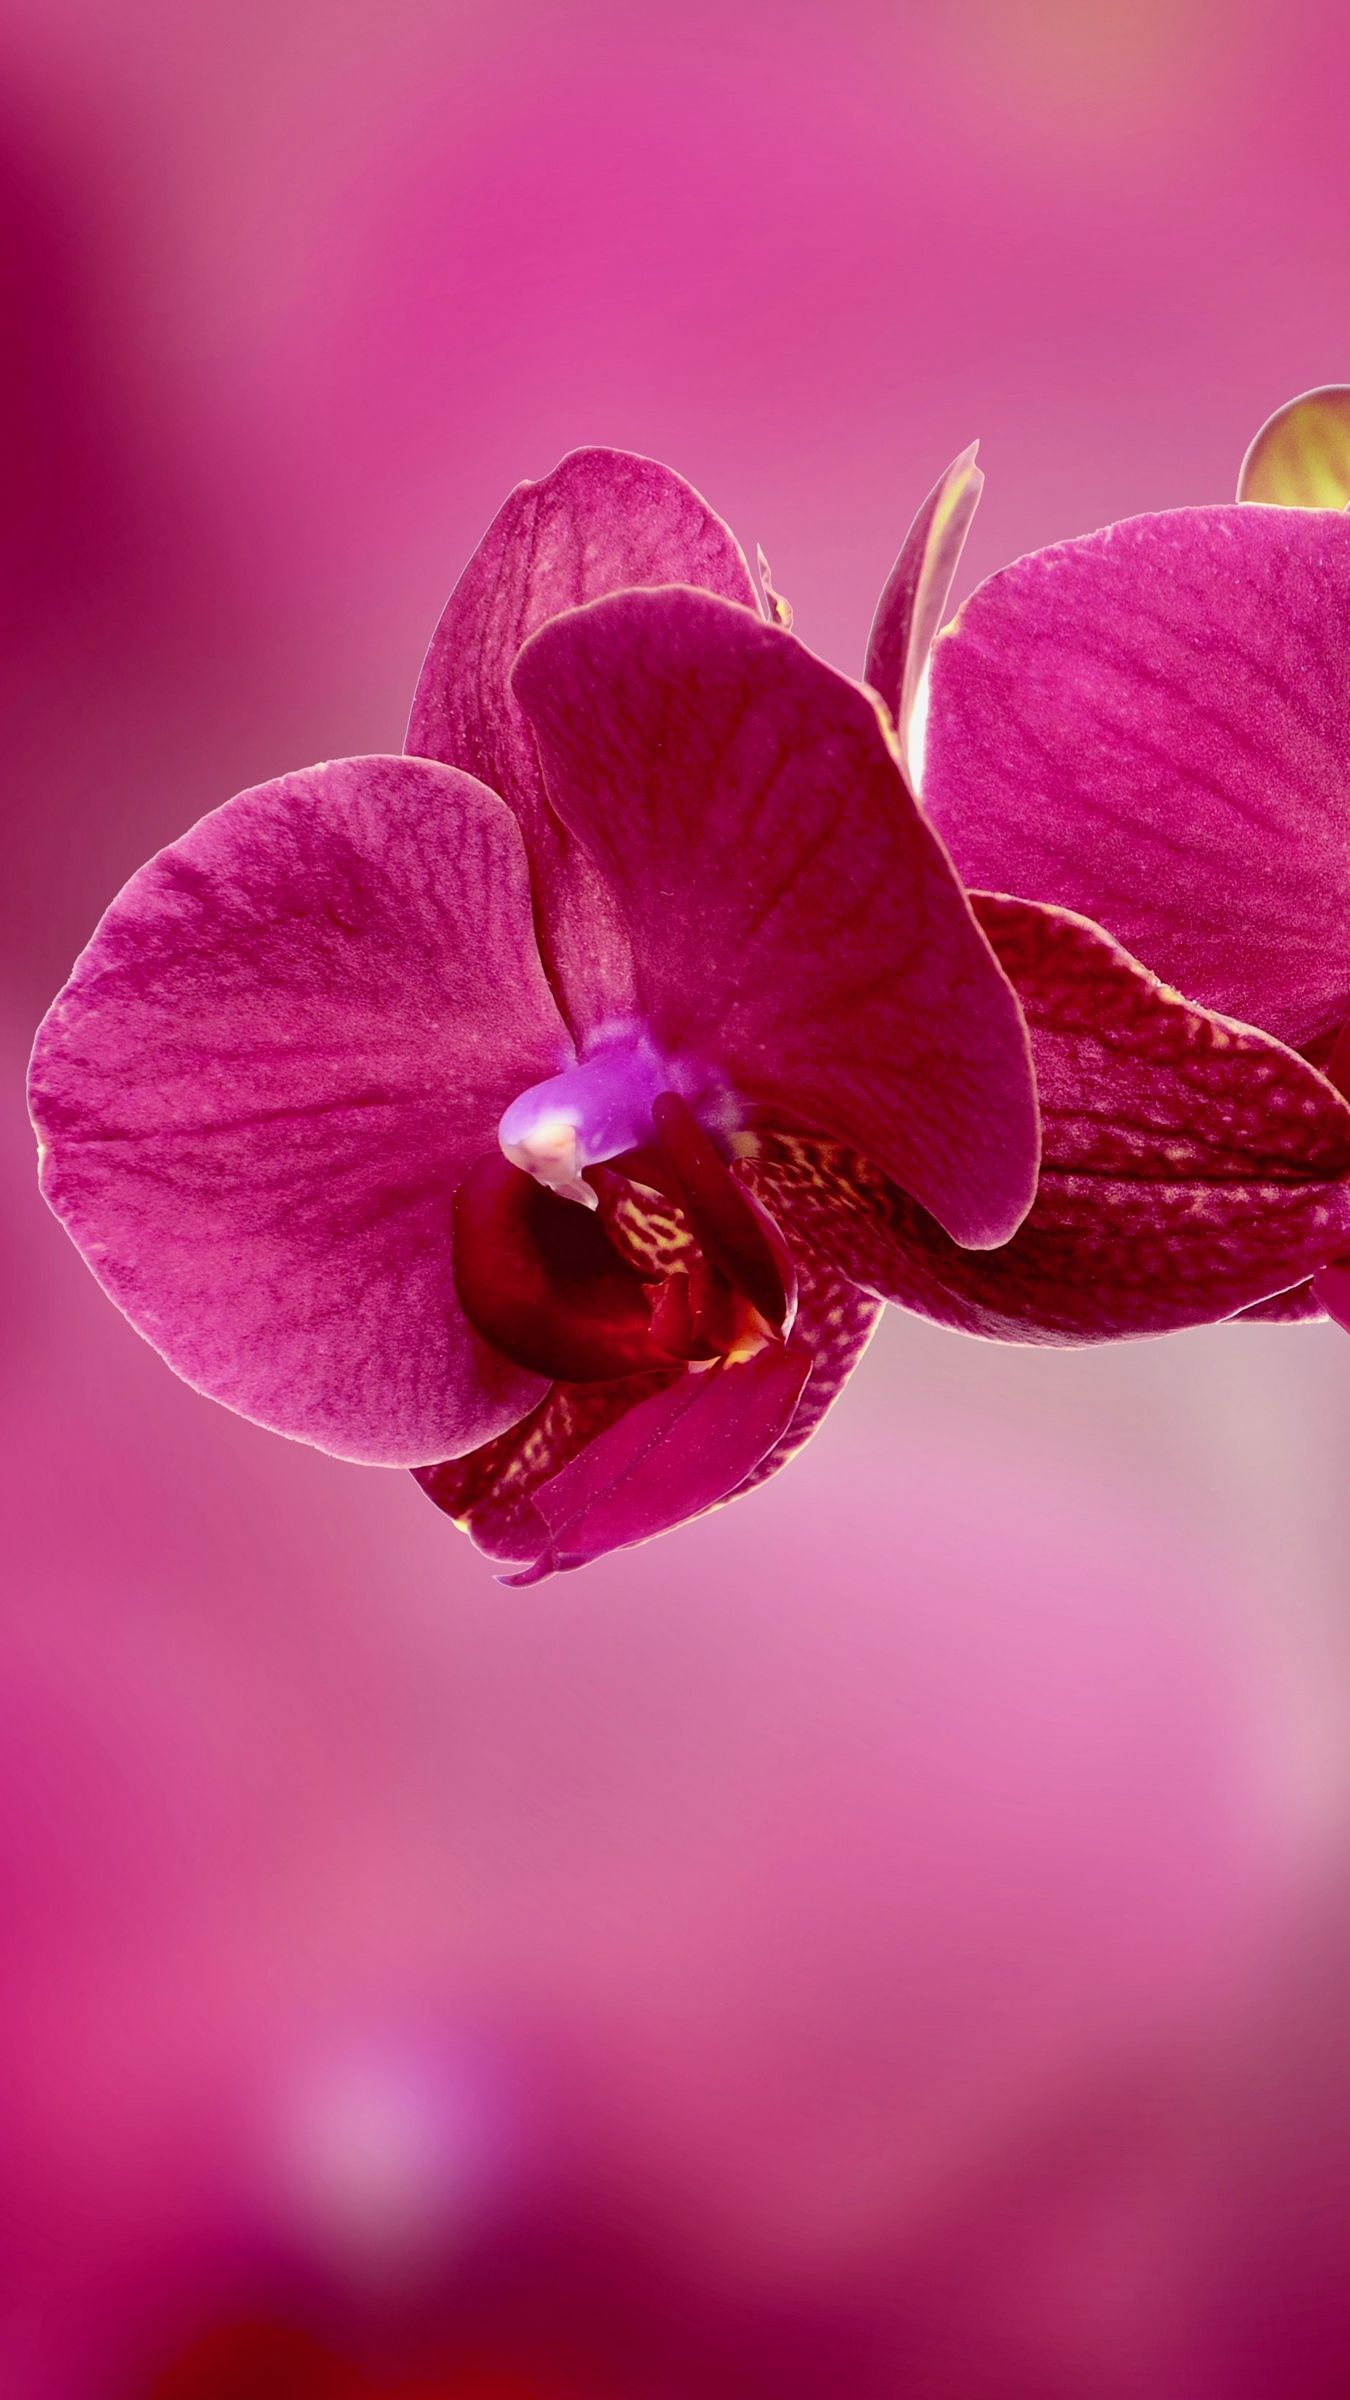 Orchid Flower Petals Pink Wallpaper Background Iphone